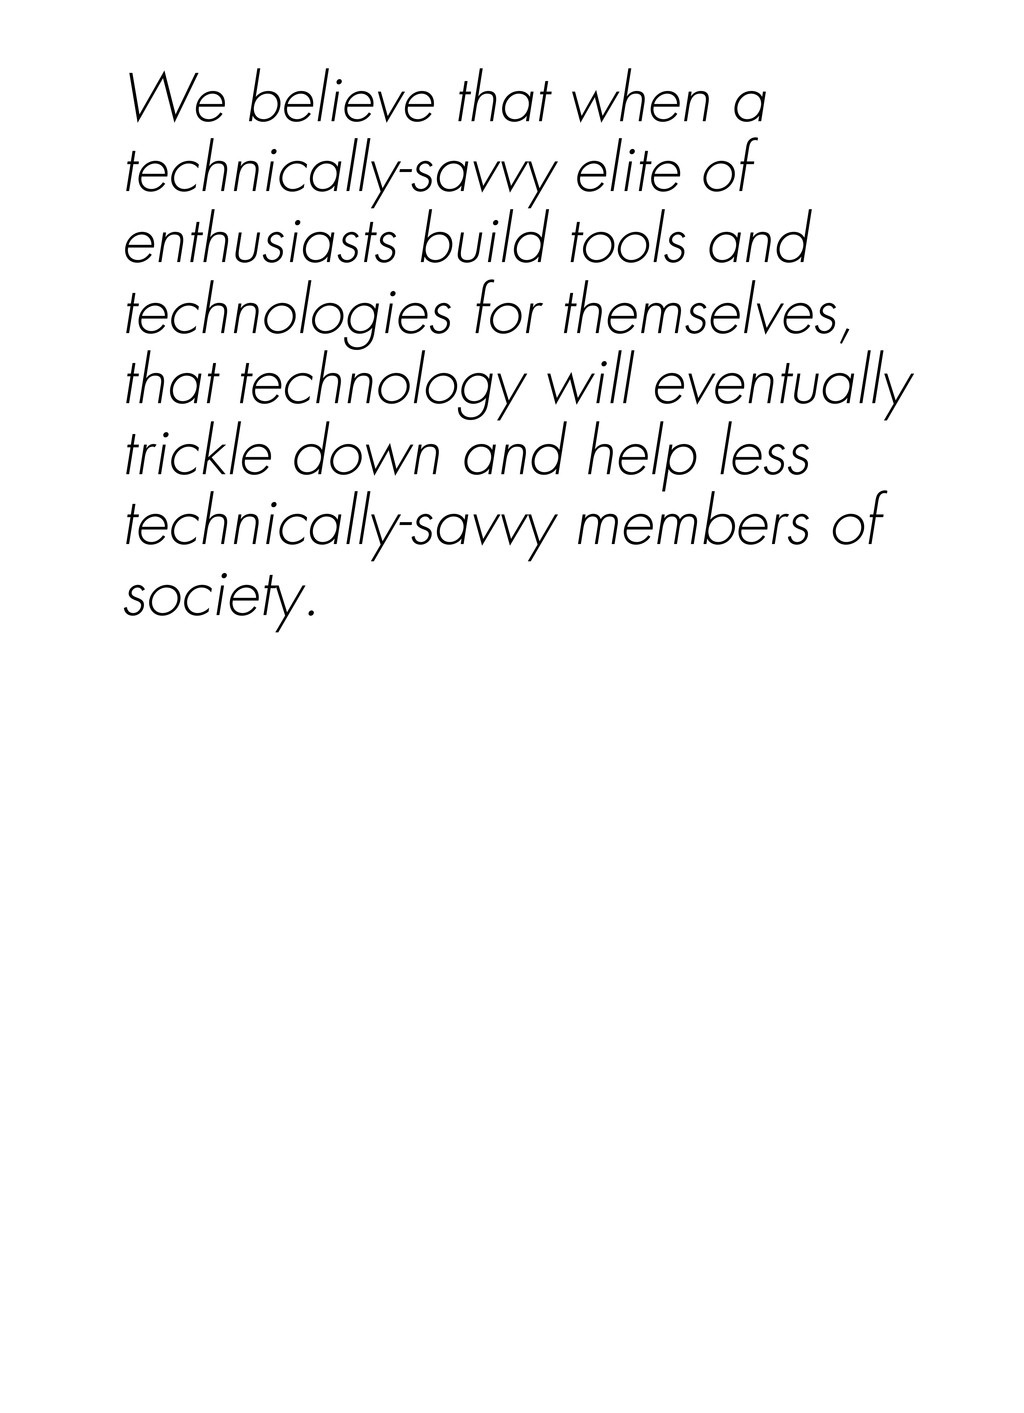 We believe that when a technically-savvy elite ...